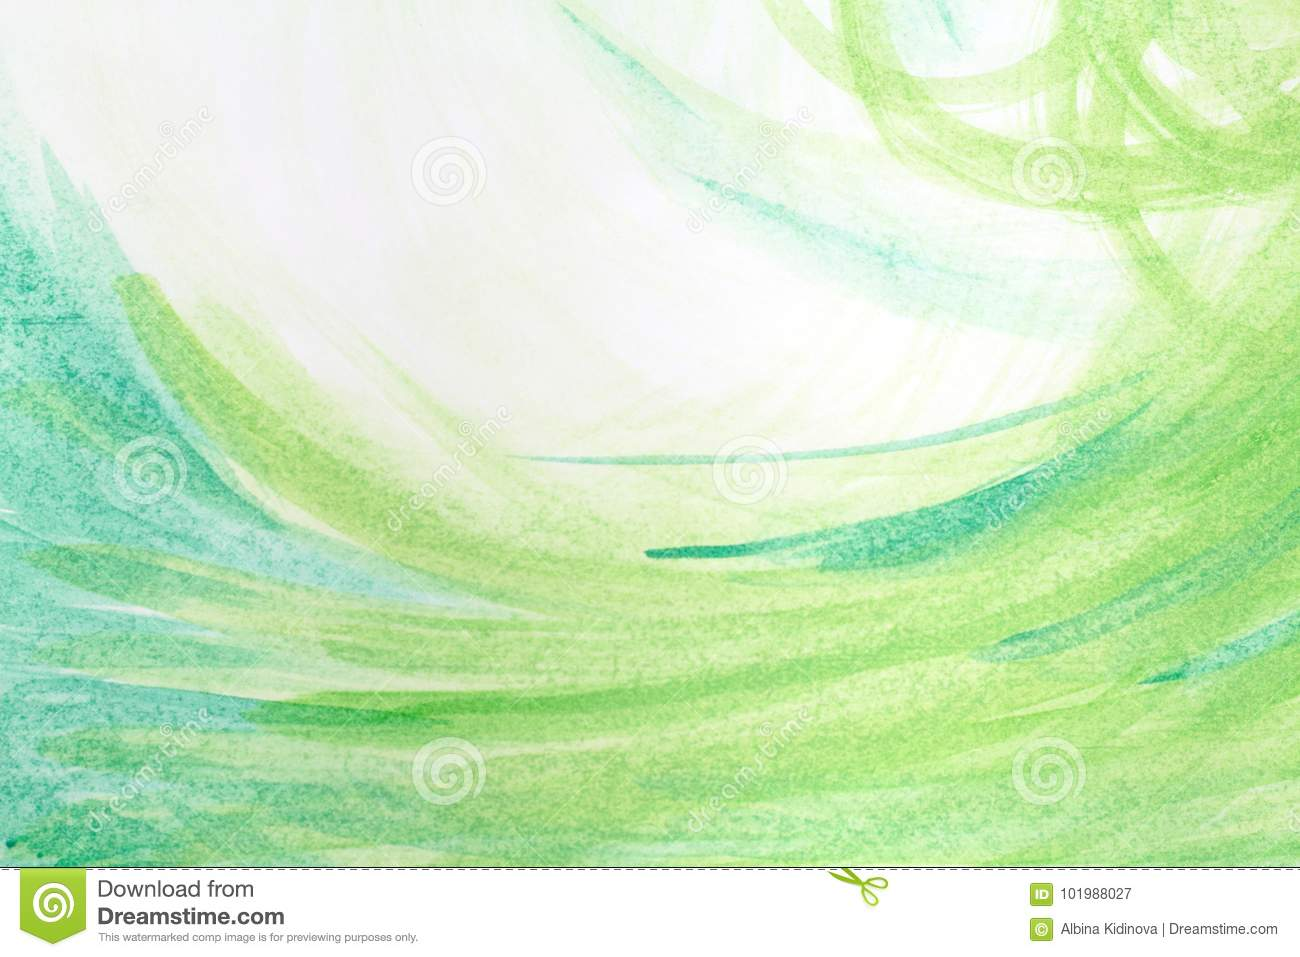 Green creative abstract hand painted background, wallpaper, texture, acrylic painting on canvas. Modern art. Contemporary art.